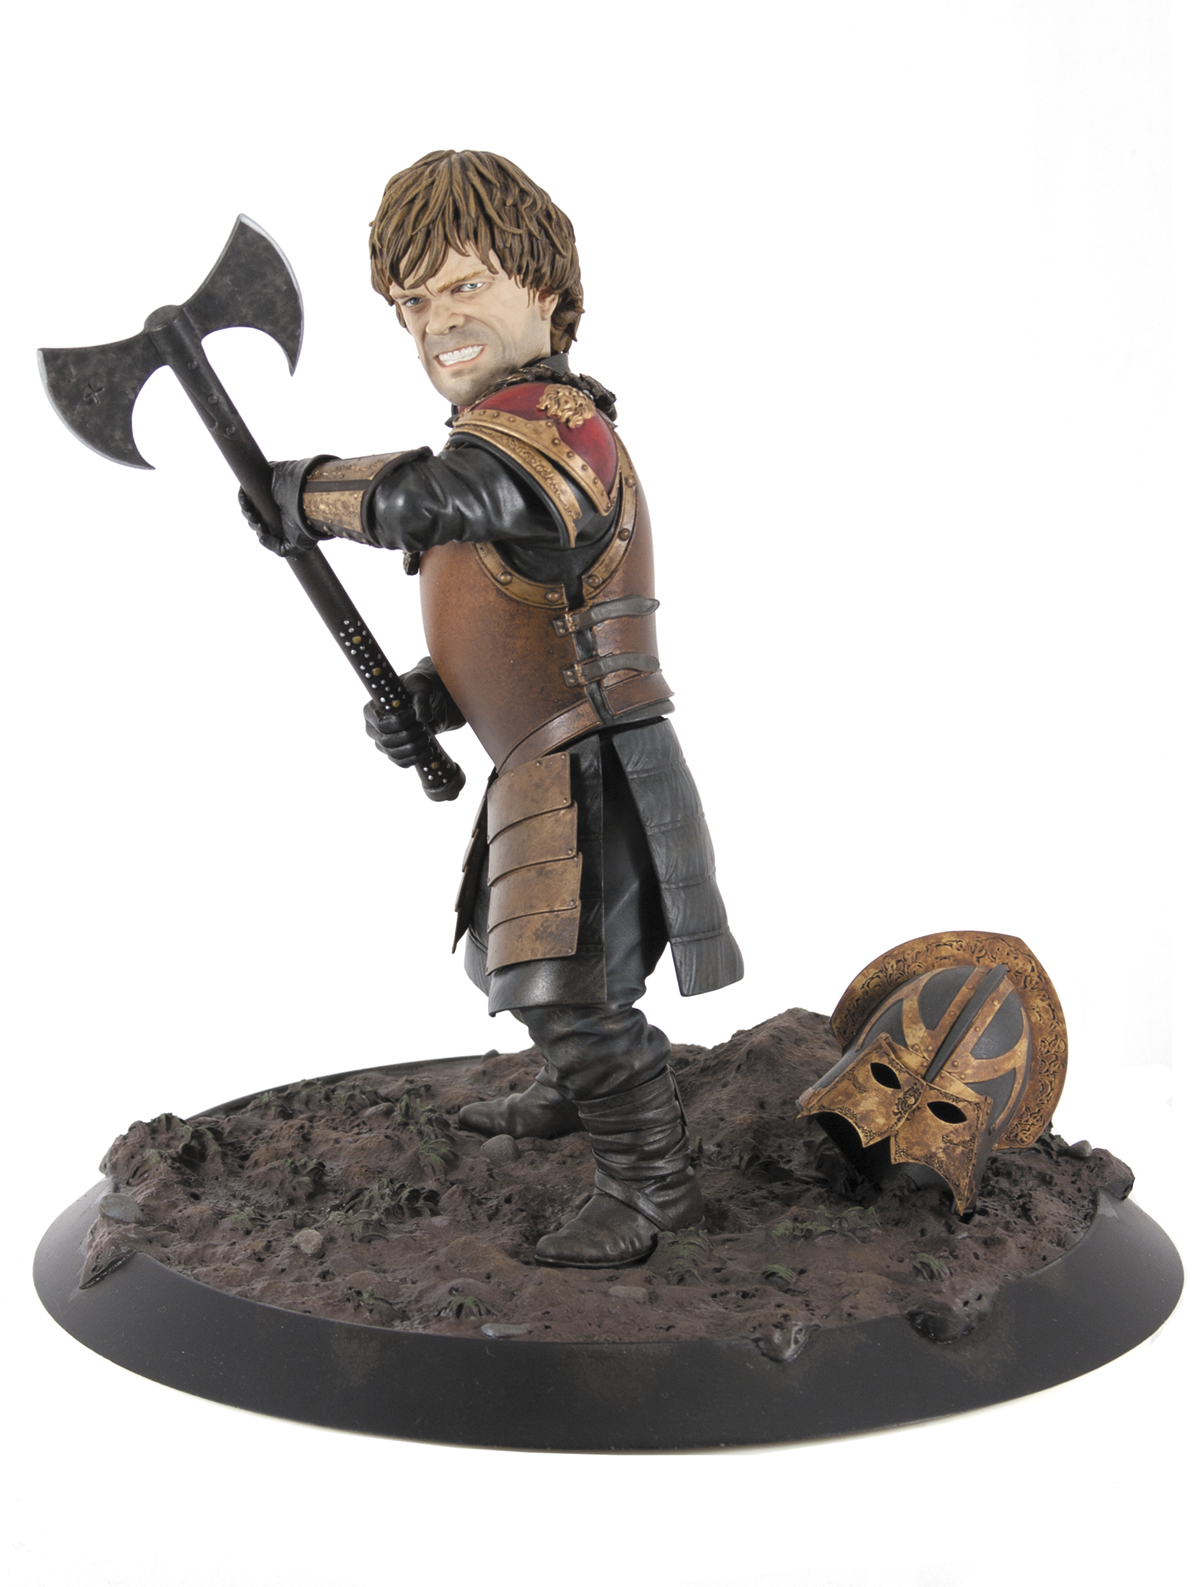 GAME OF THRONES STATUE TYRION